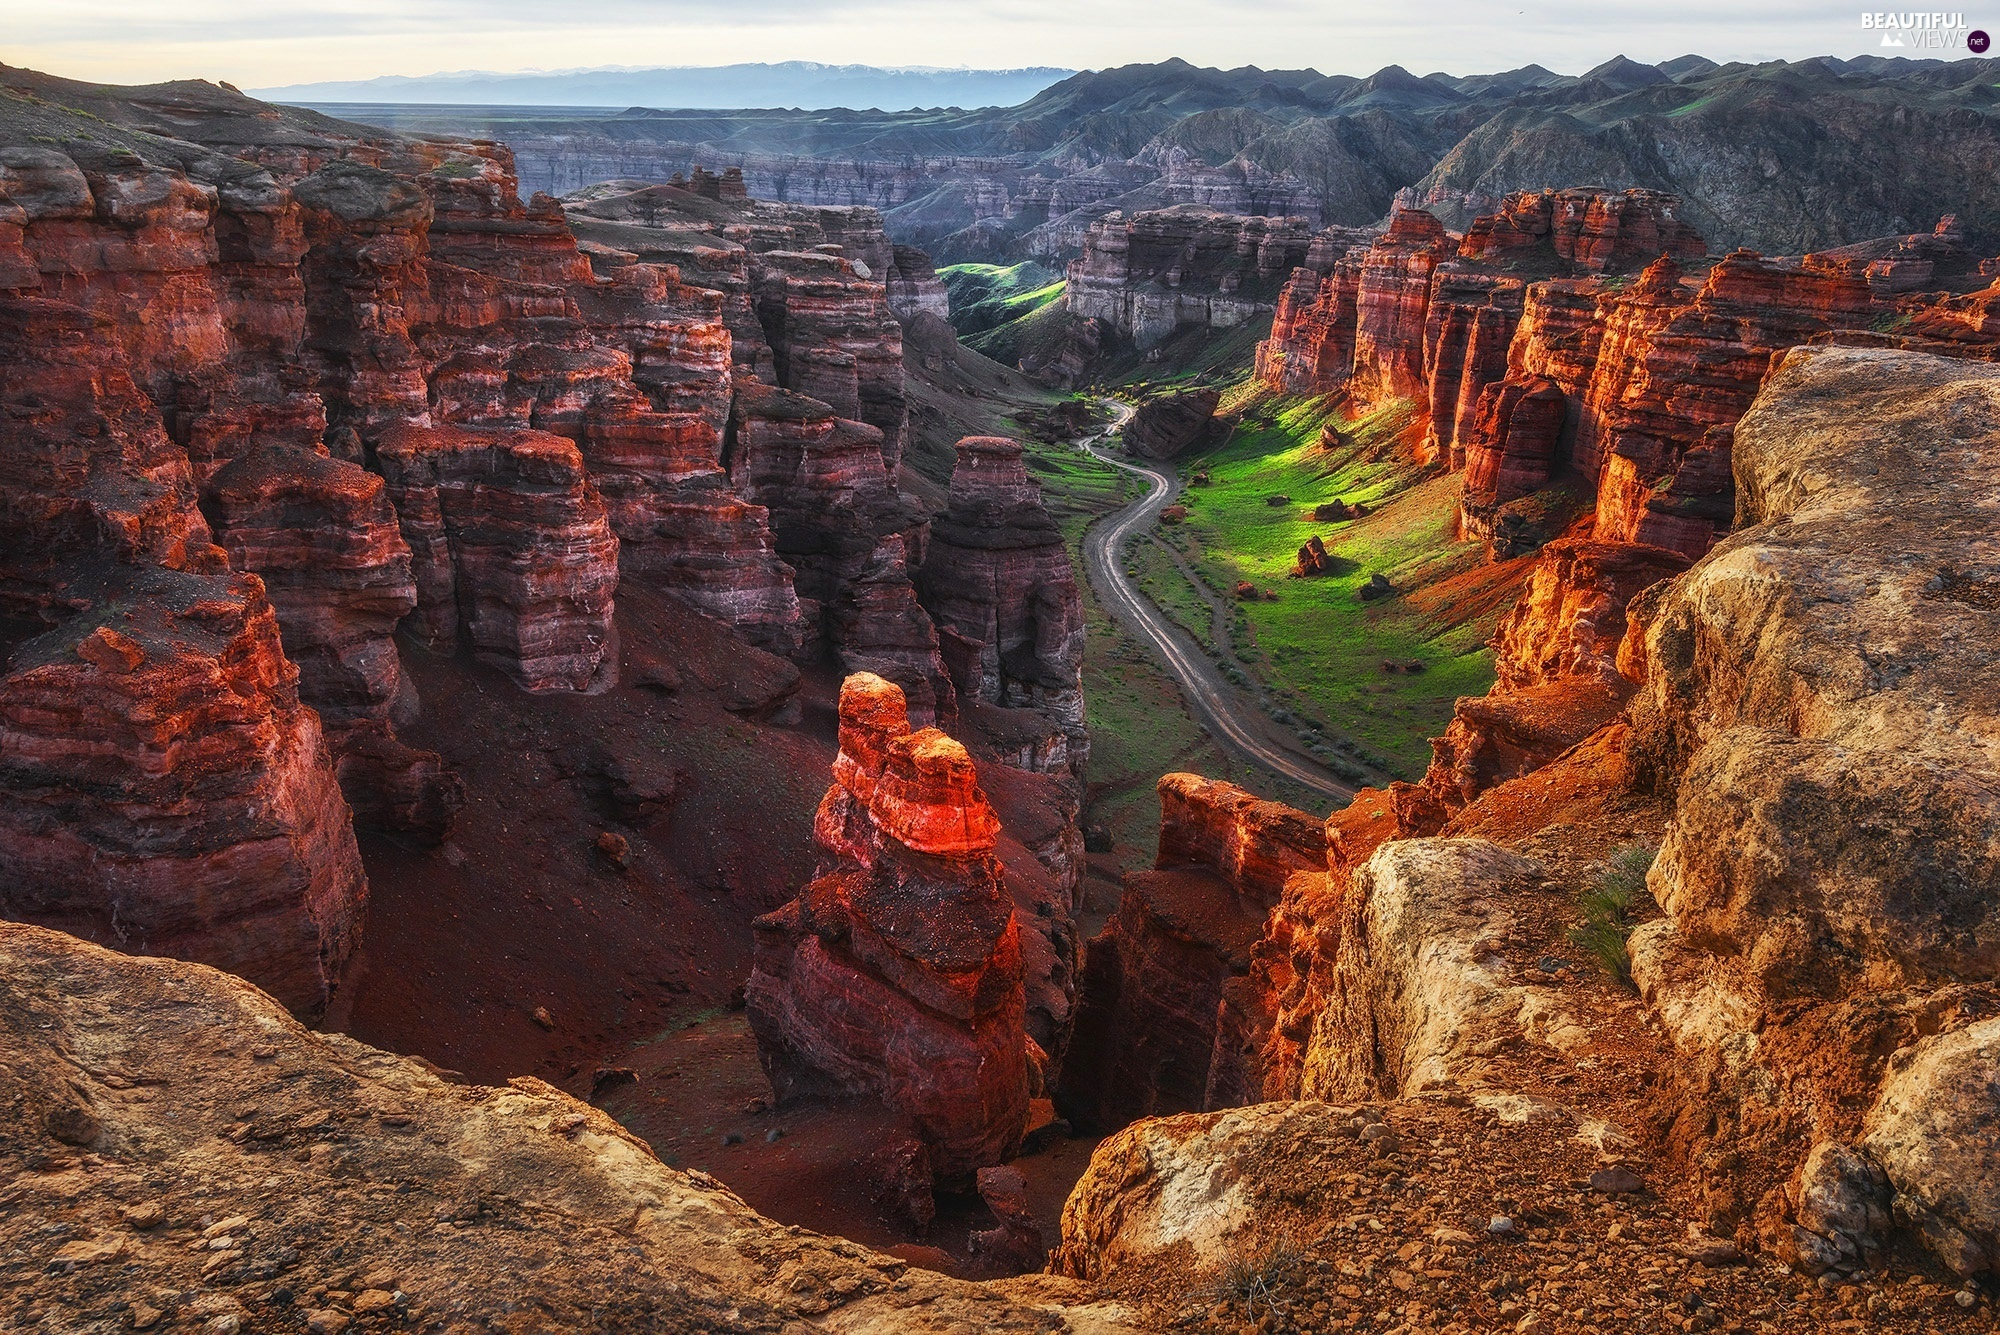 morning, rocks, Sharyn Canyon, Valley, Kazakhstan